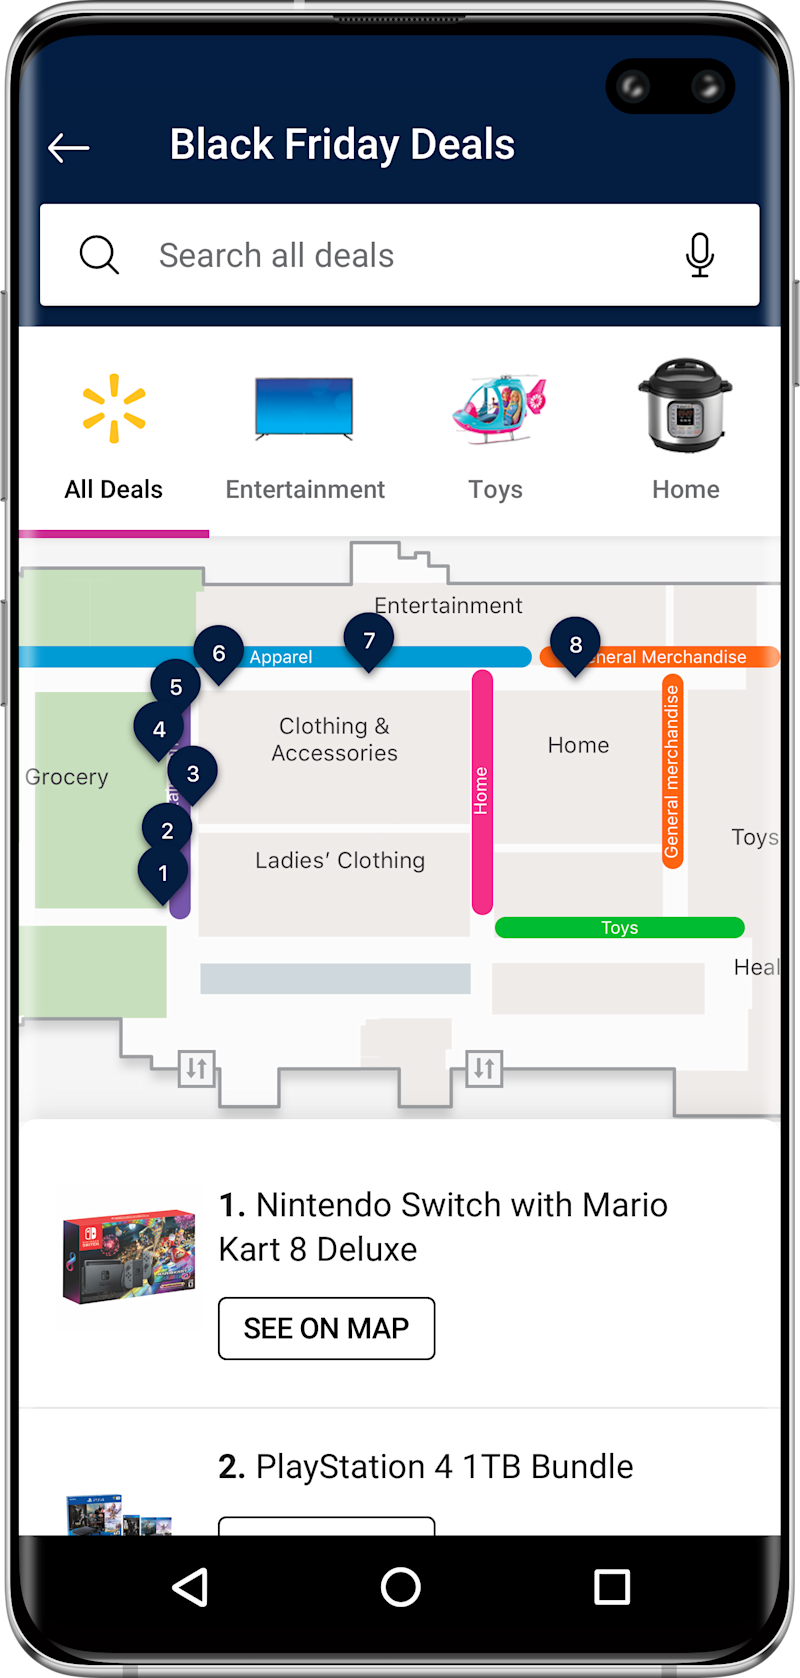 Walmart's app features a color-coded map to help shoppers find sought after Black Friday deals.